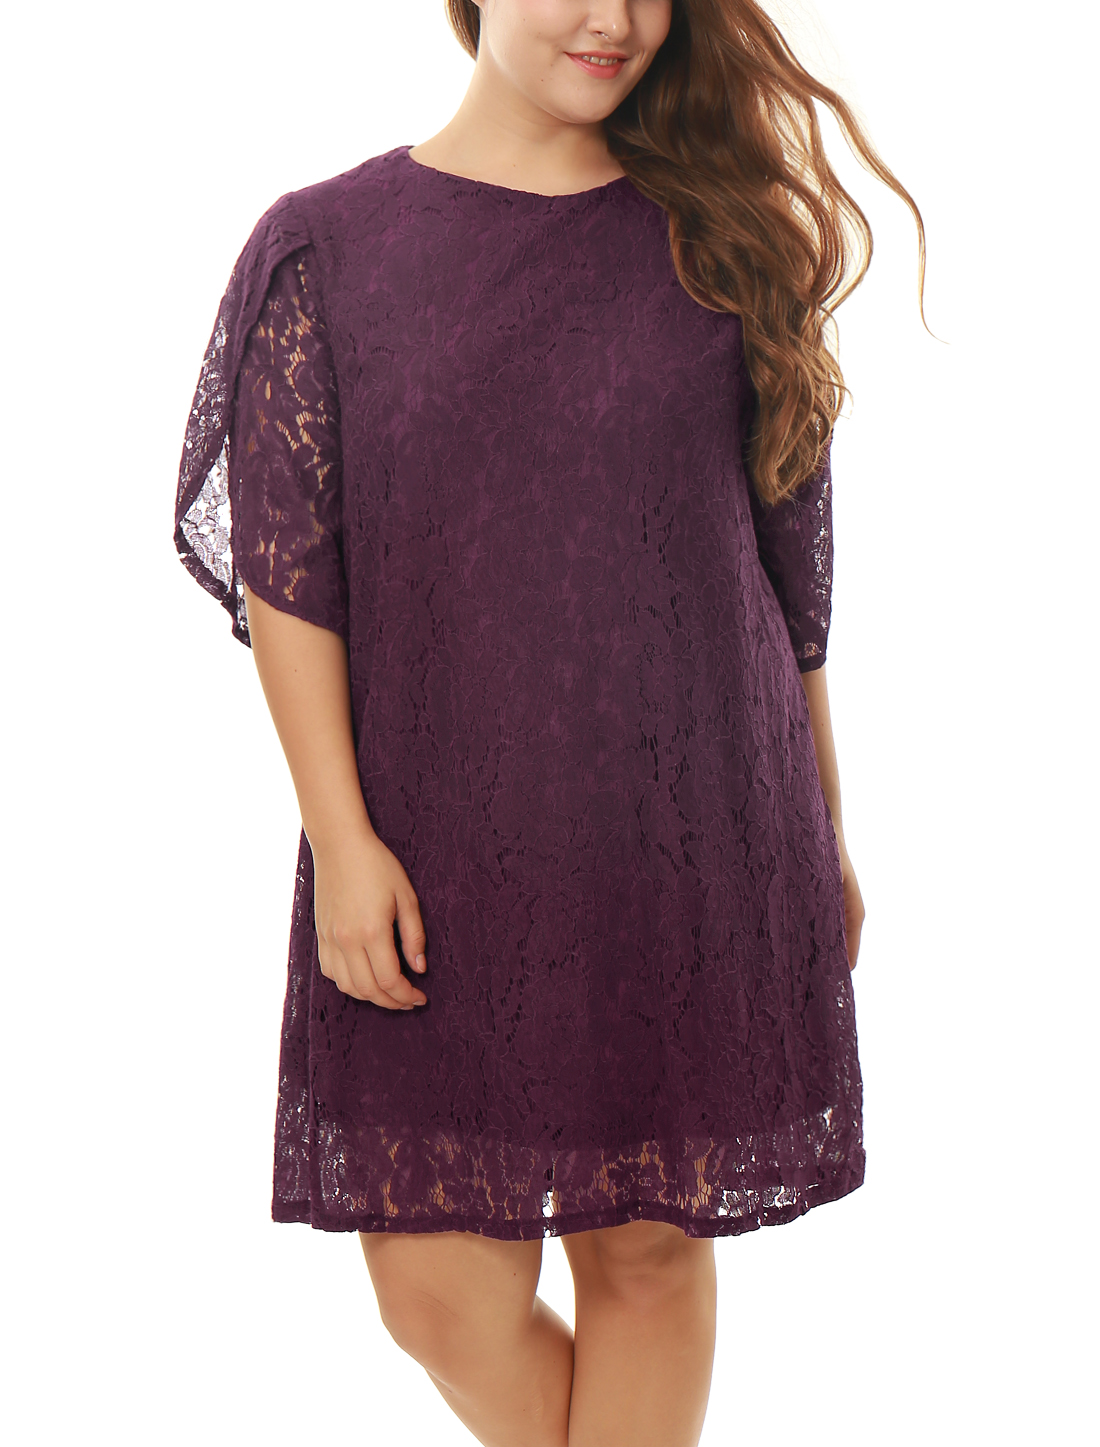 Women Plus Size Tulip Sleeves Floral Lace Shift Dress Burgundy 2X